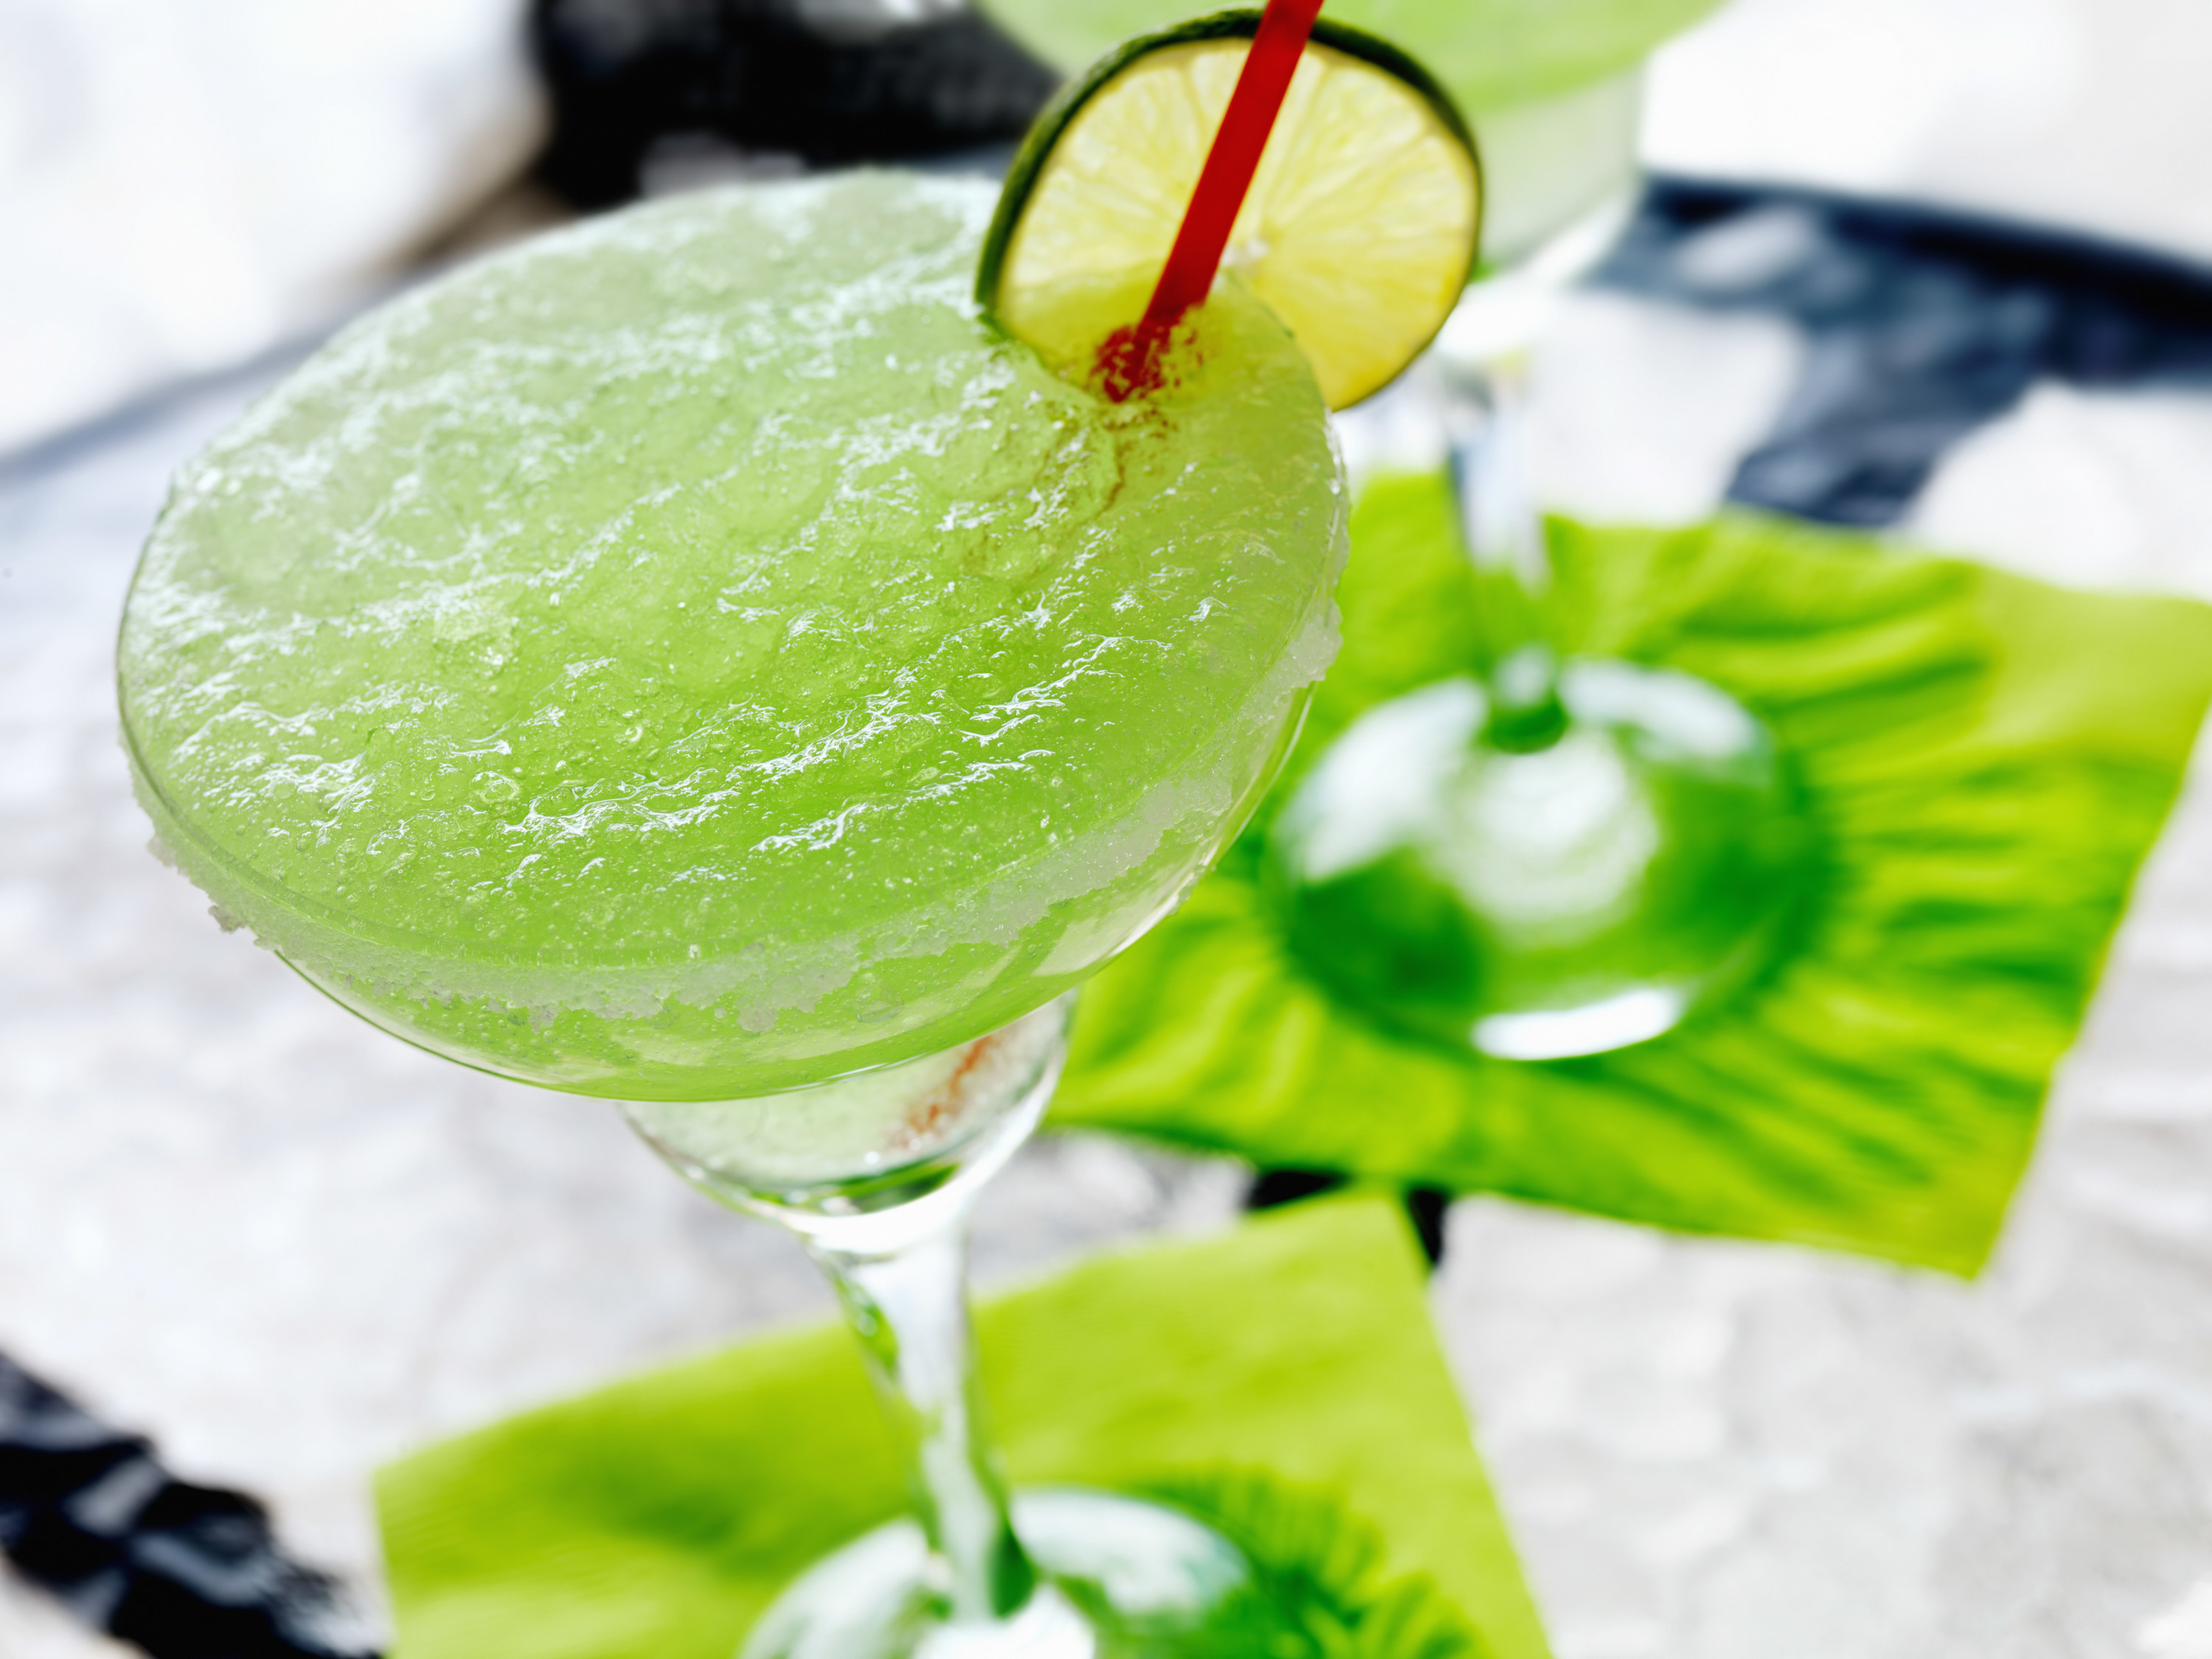 A slushy bright green margarita with a lime wedge and red straw